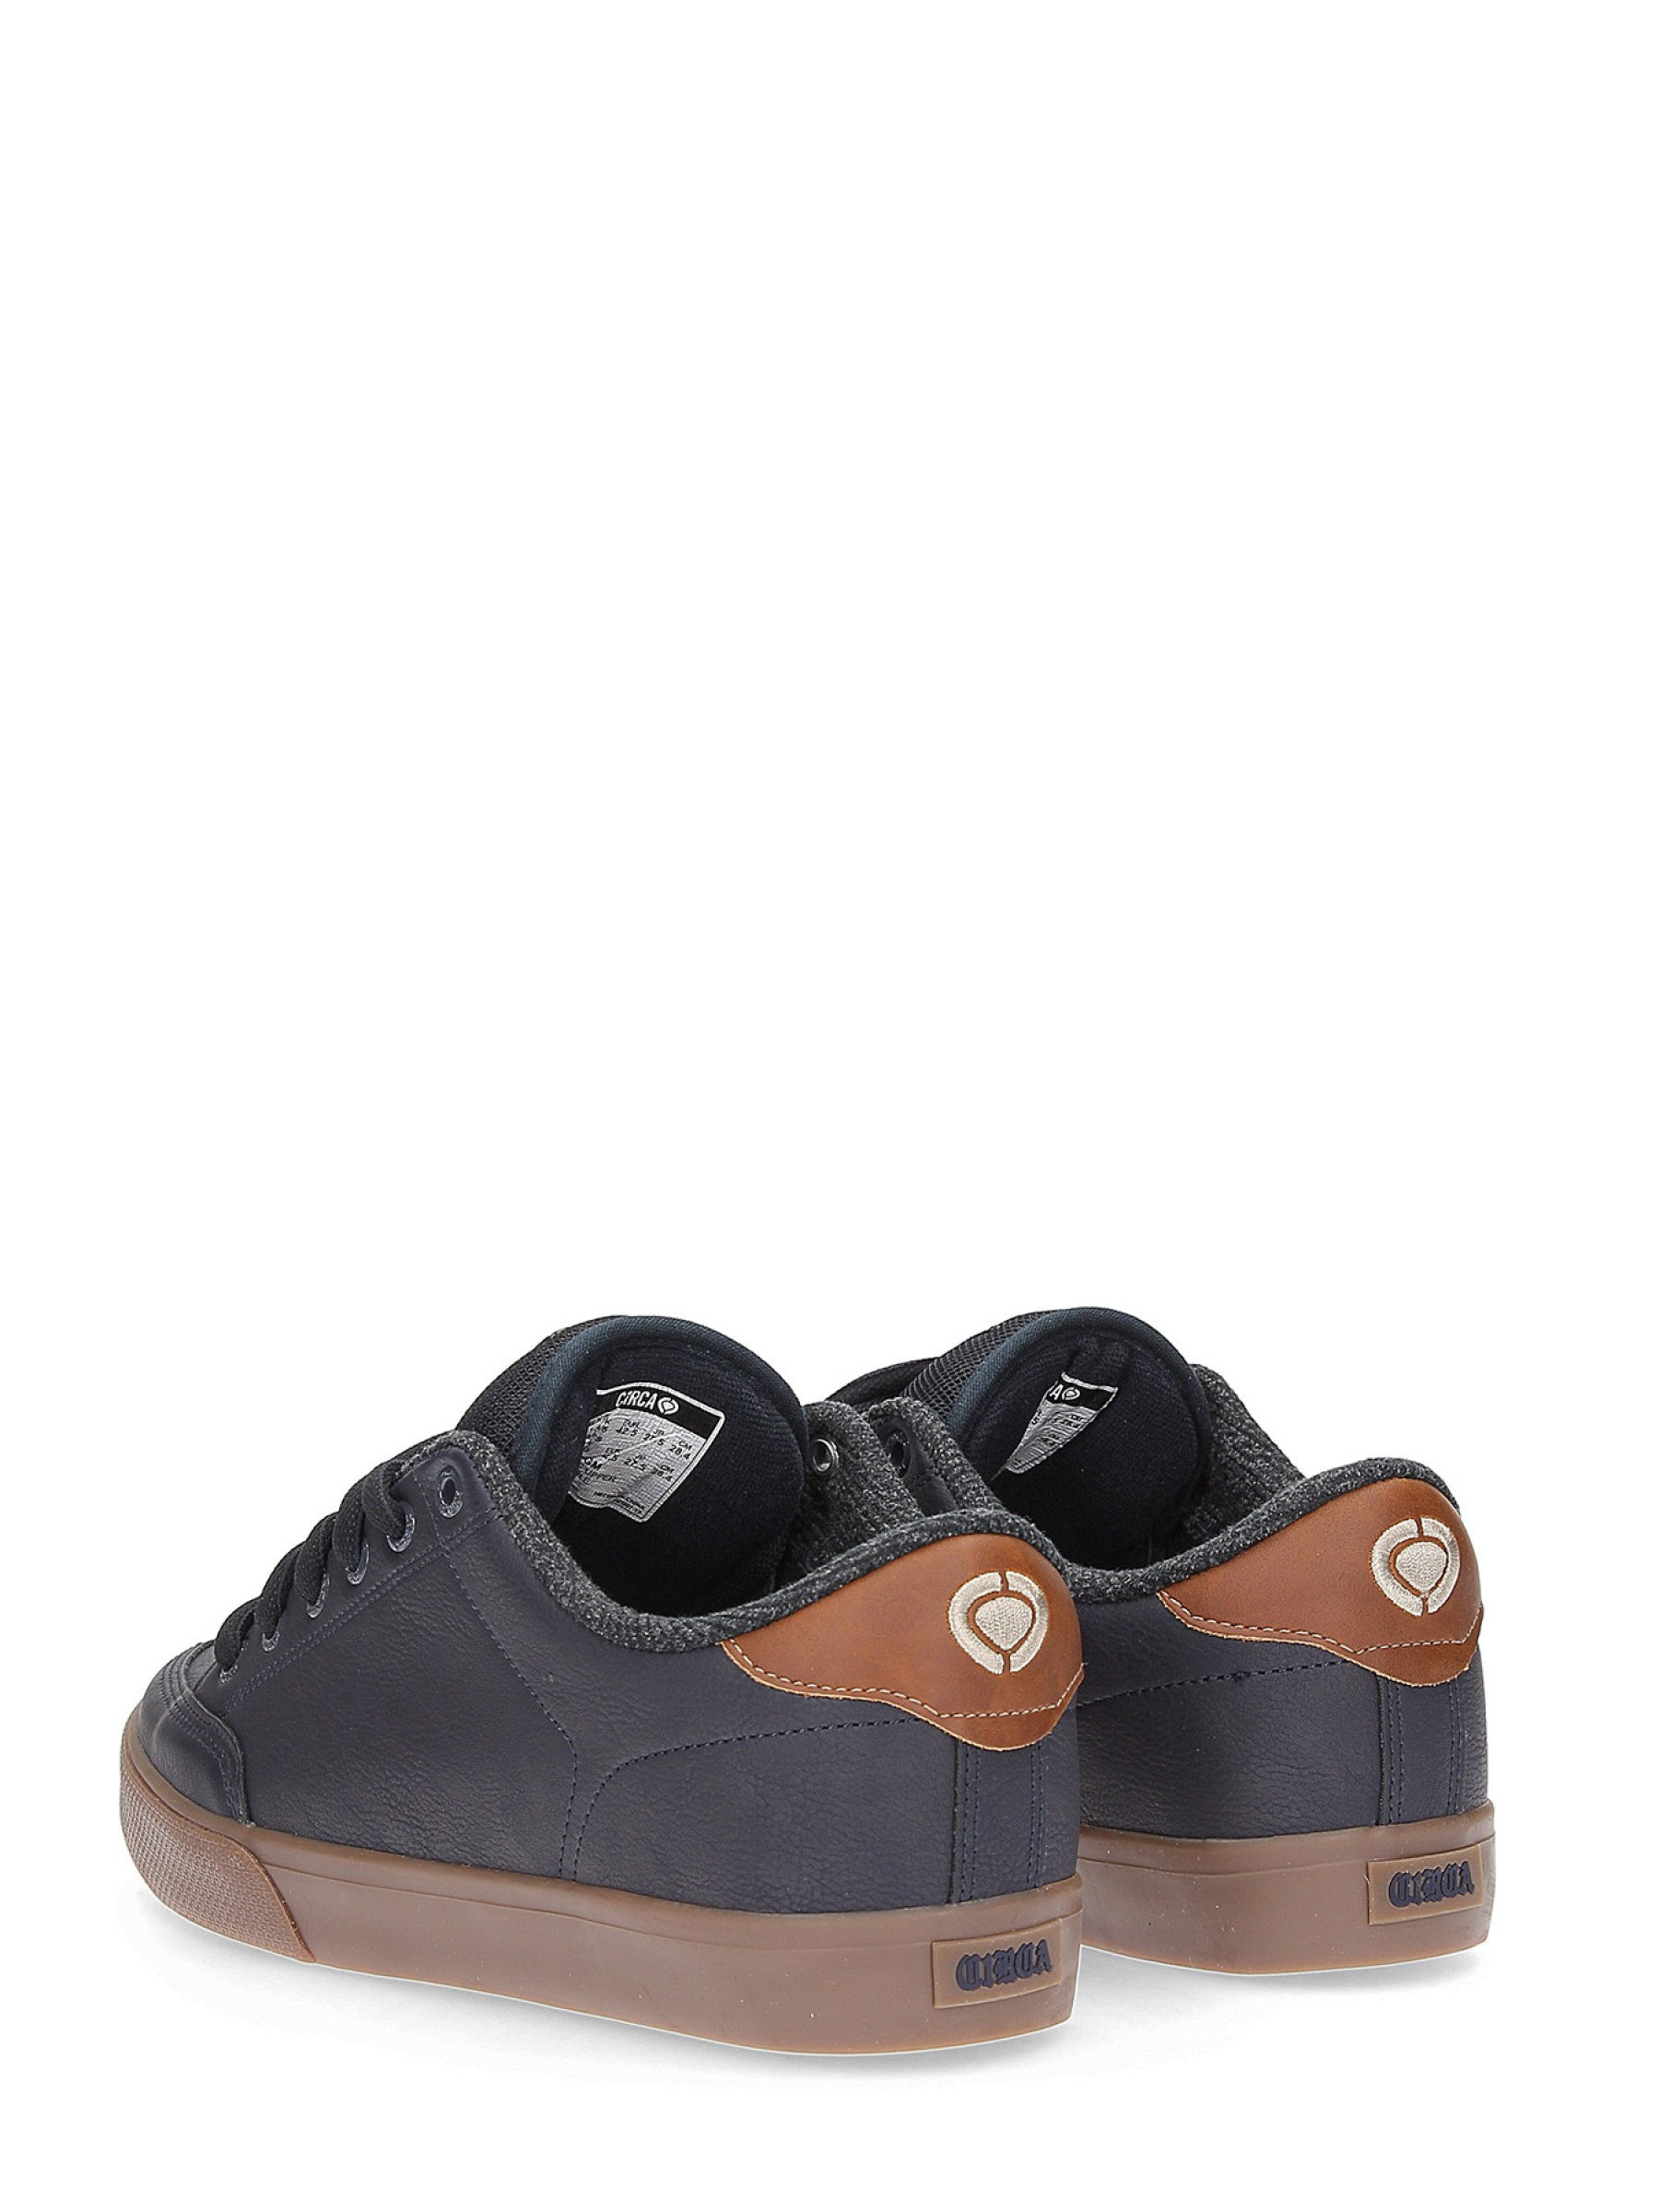 the latest 4a281 3bc7d AL50 Scarpe Skate Unisex